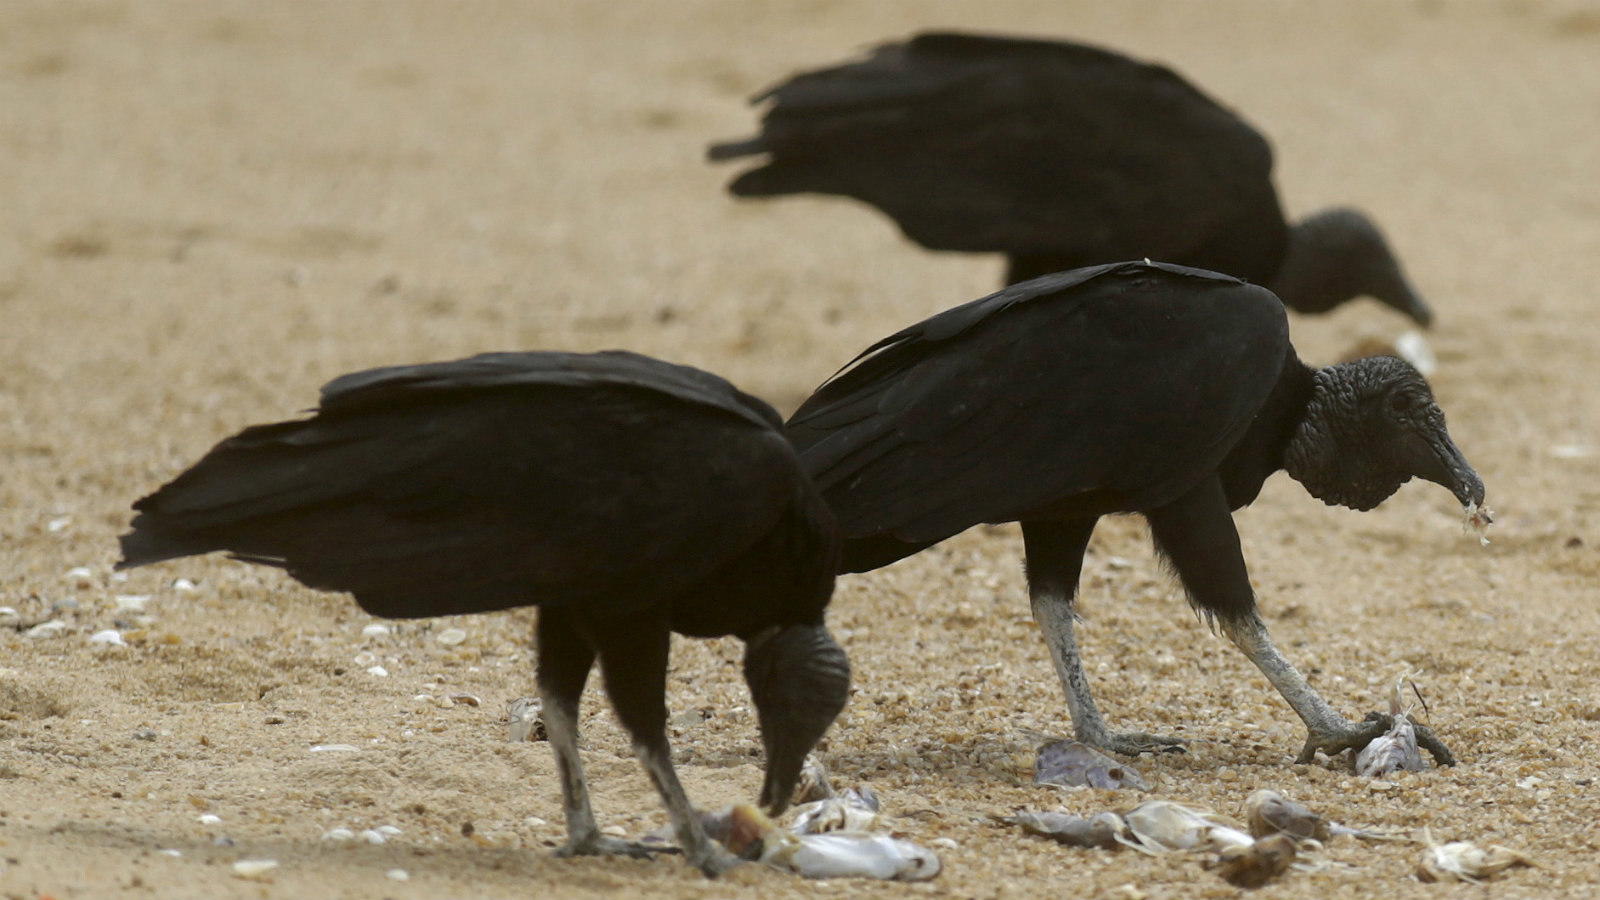 Vultures eat dead fish found on the beach of Povoacao Village, near the mouth of Rio Doce (Doce River), which was flooded with mud after a dam owned by Vale SA and BHP Billiton Ltd burst, at an area where the river joins the sea on the coast of Espirito Santo, Brazil, November 23, 2015.